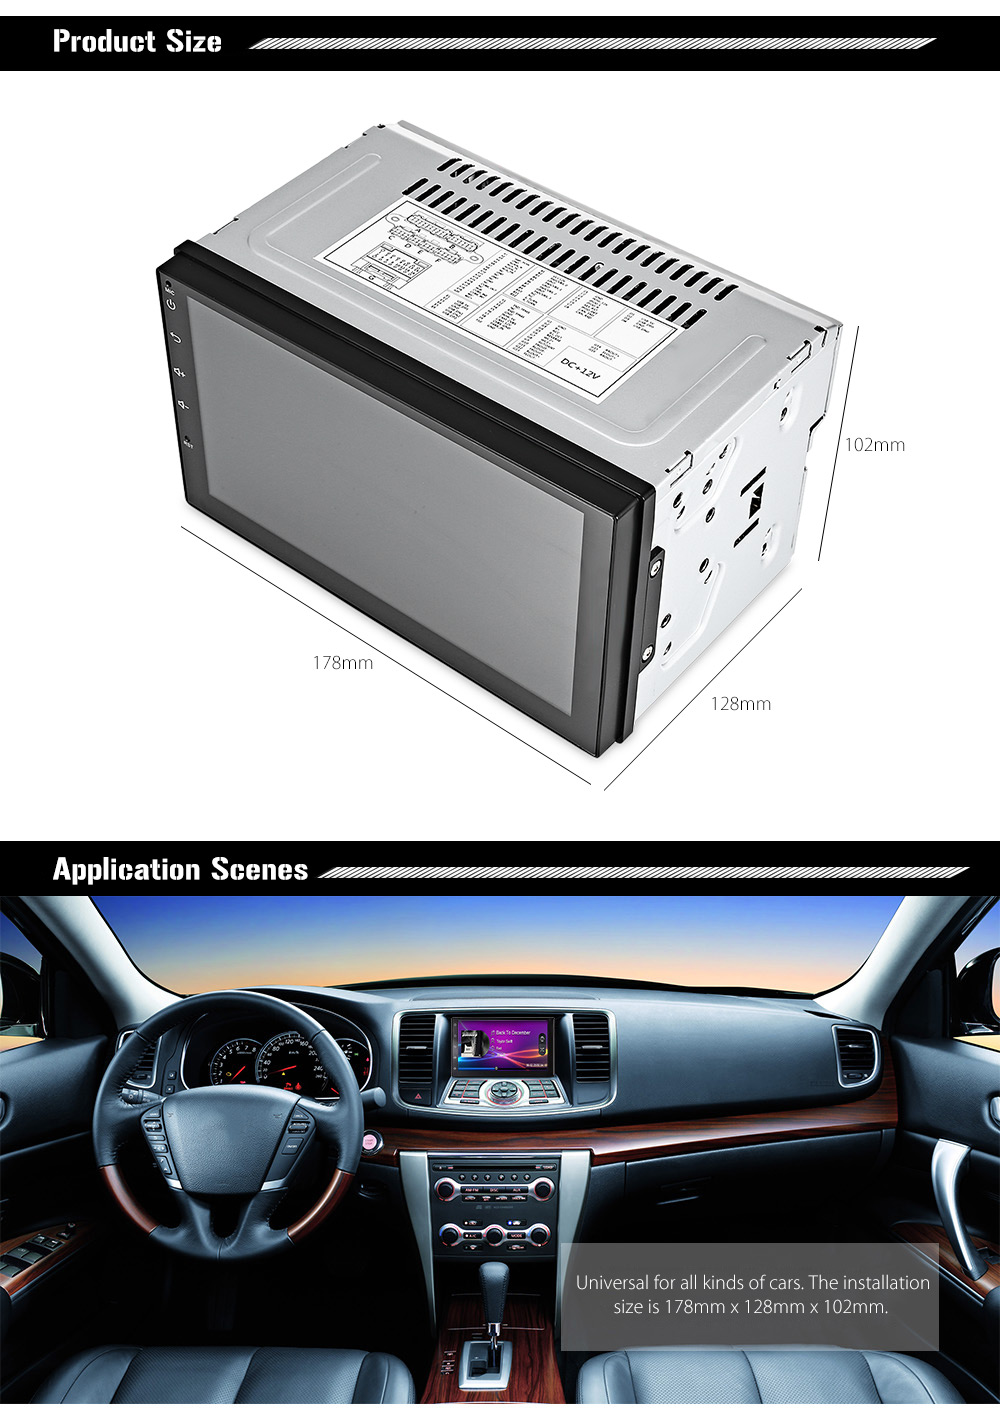 medium resolution of universal 7003 android 6 0 with bluetooth gps wifi car multimedia player 7 inch capacitive touch screen